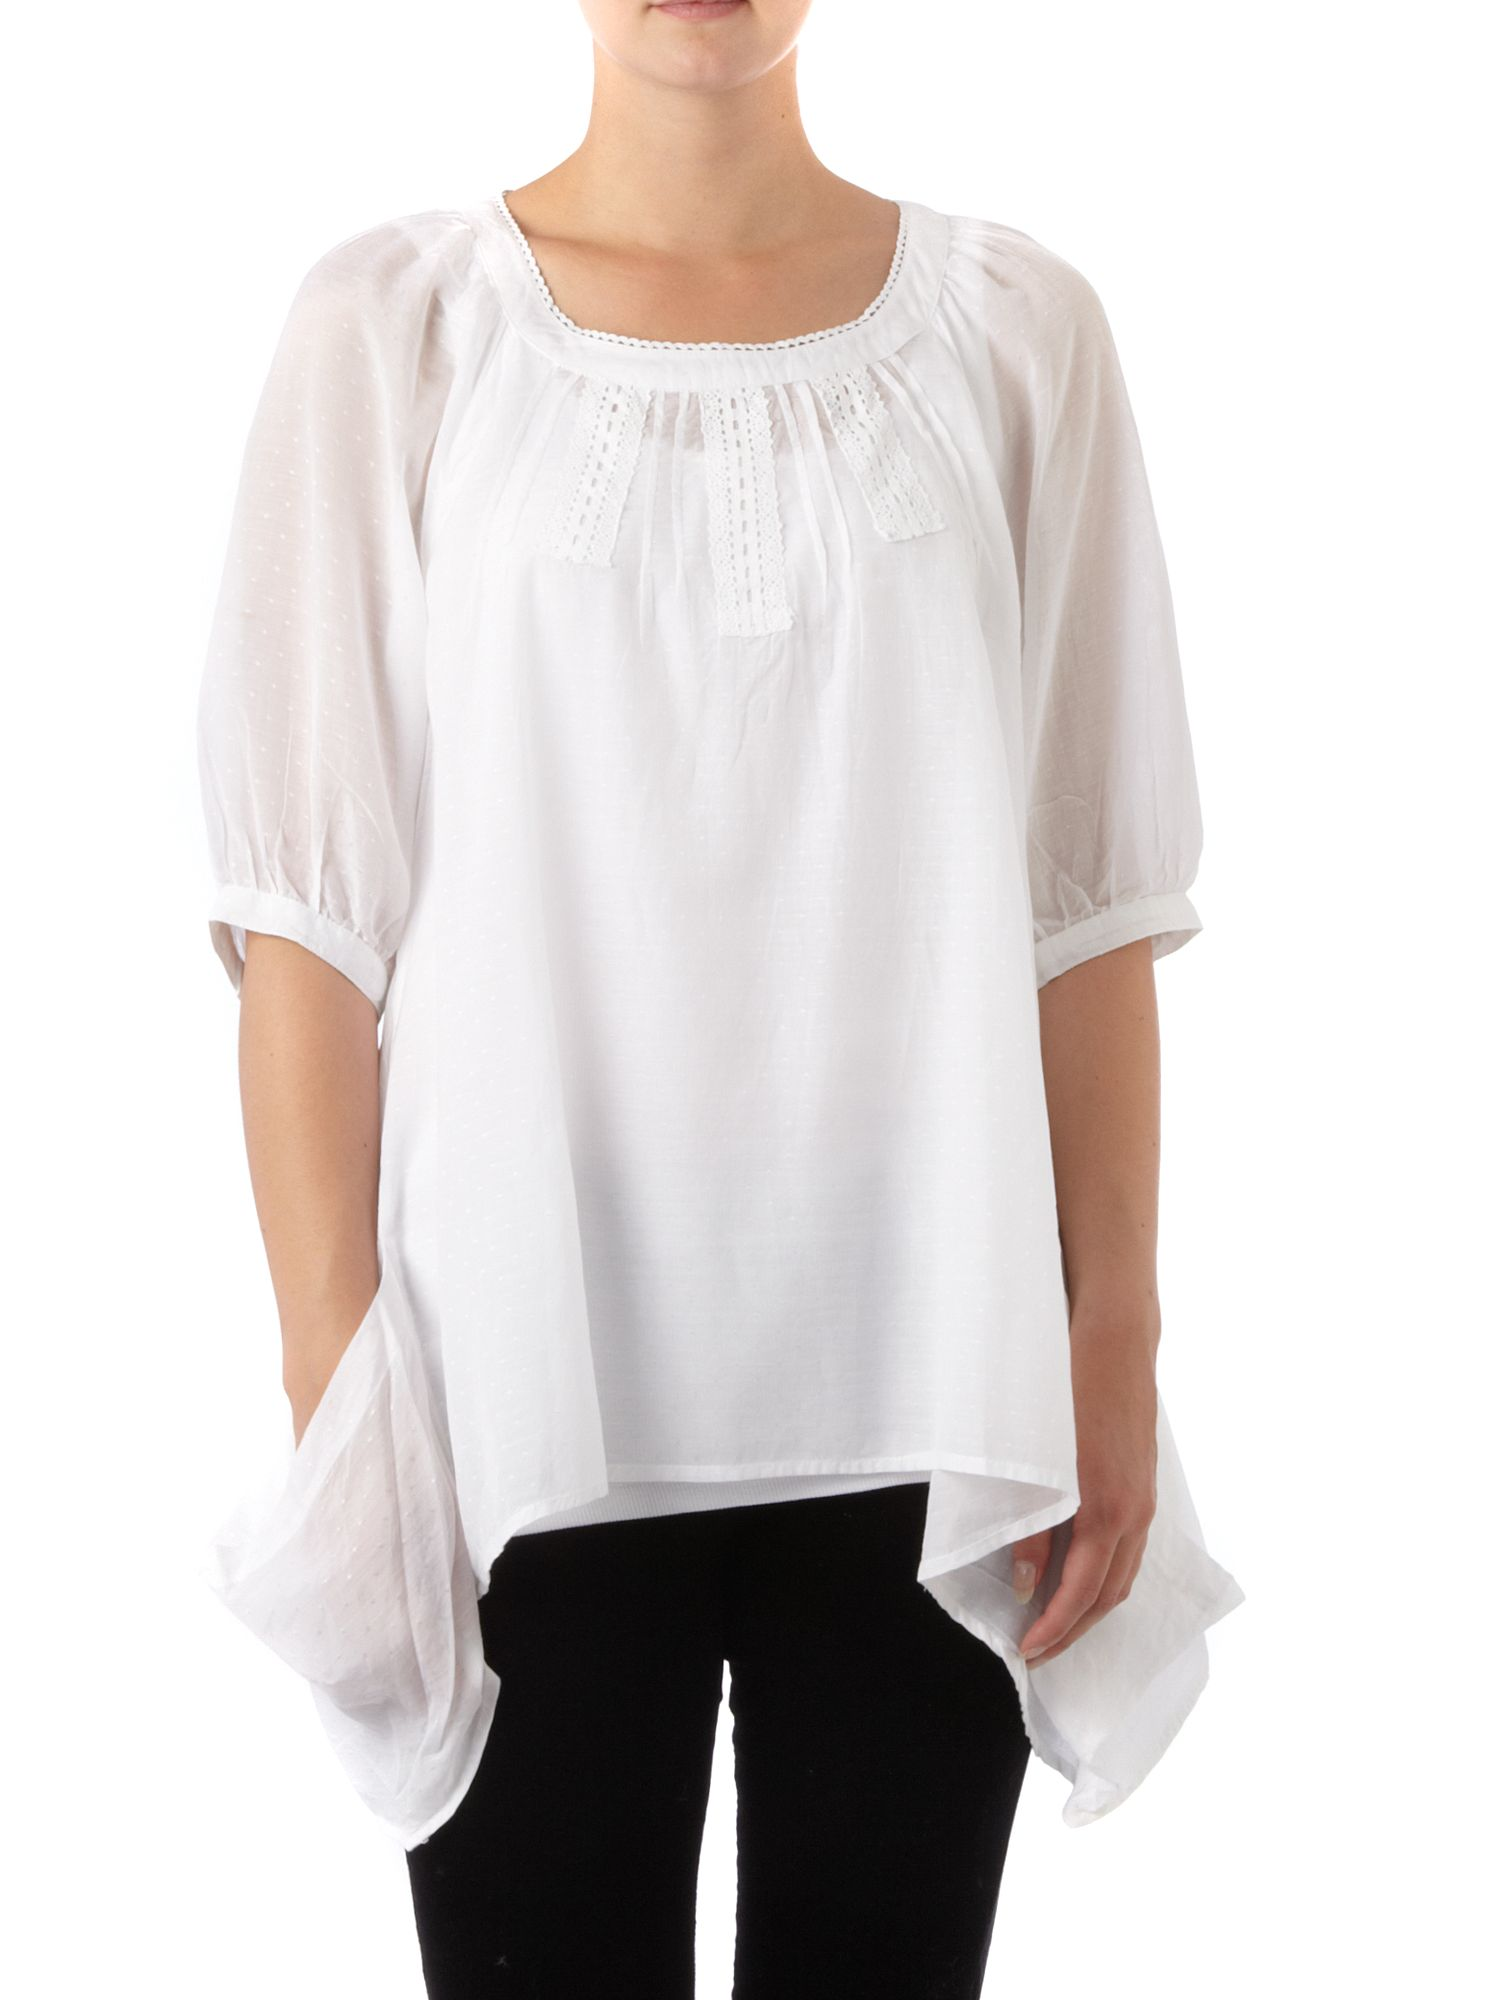 Linea Weekend Dobby spot hanky hem blouse White product image